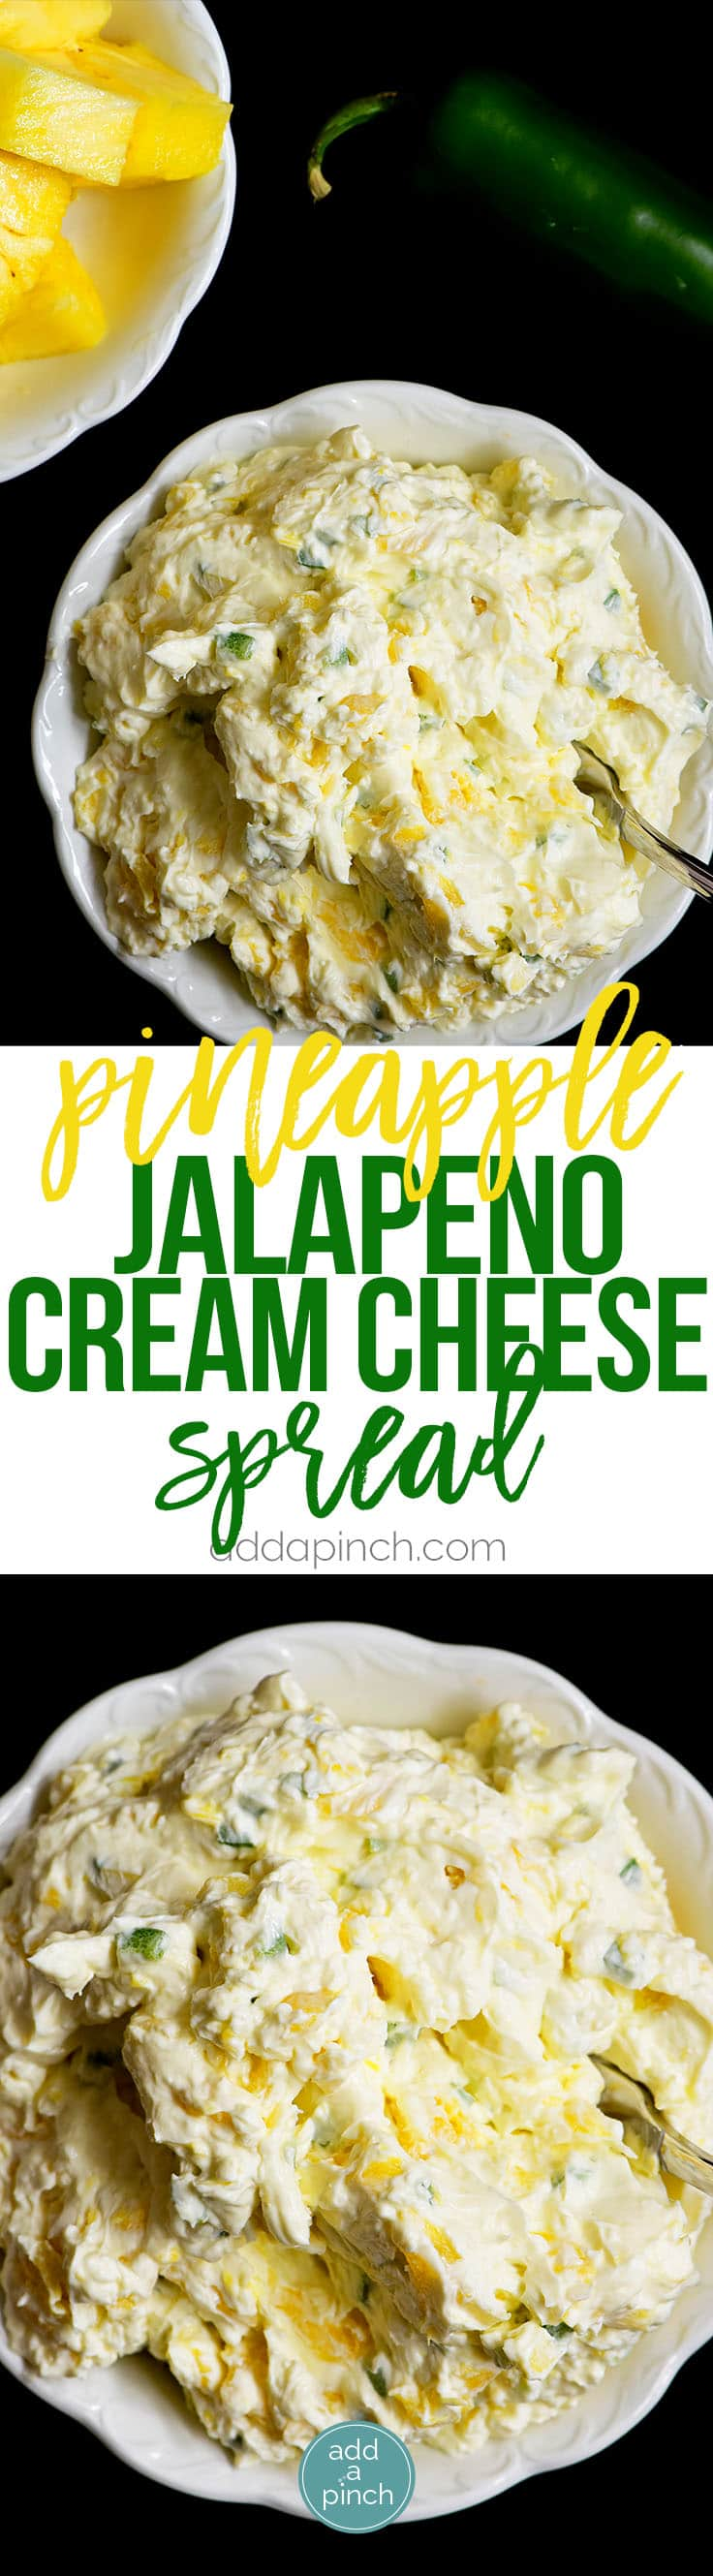 Pineapple Jalapeno Cream Cheese Spread - This quick and easy recipe comes together in a snap with just four ingredients! This sweet and spicy cream cheese spread is perfect for sandwiches, wraps, crackers or bagels! // addapinch.com